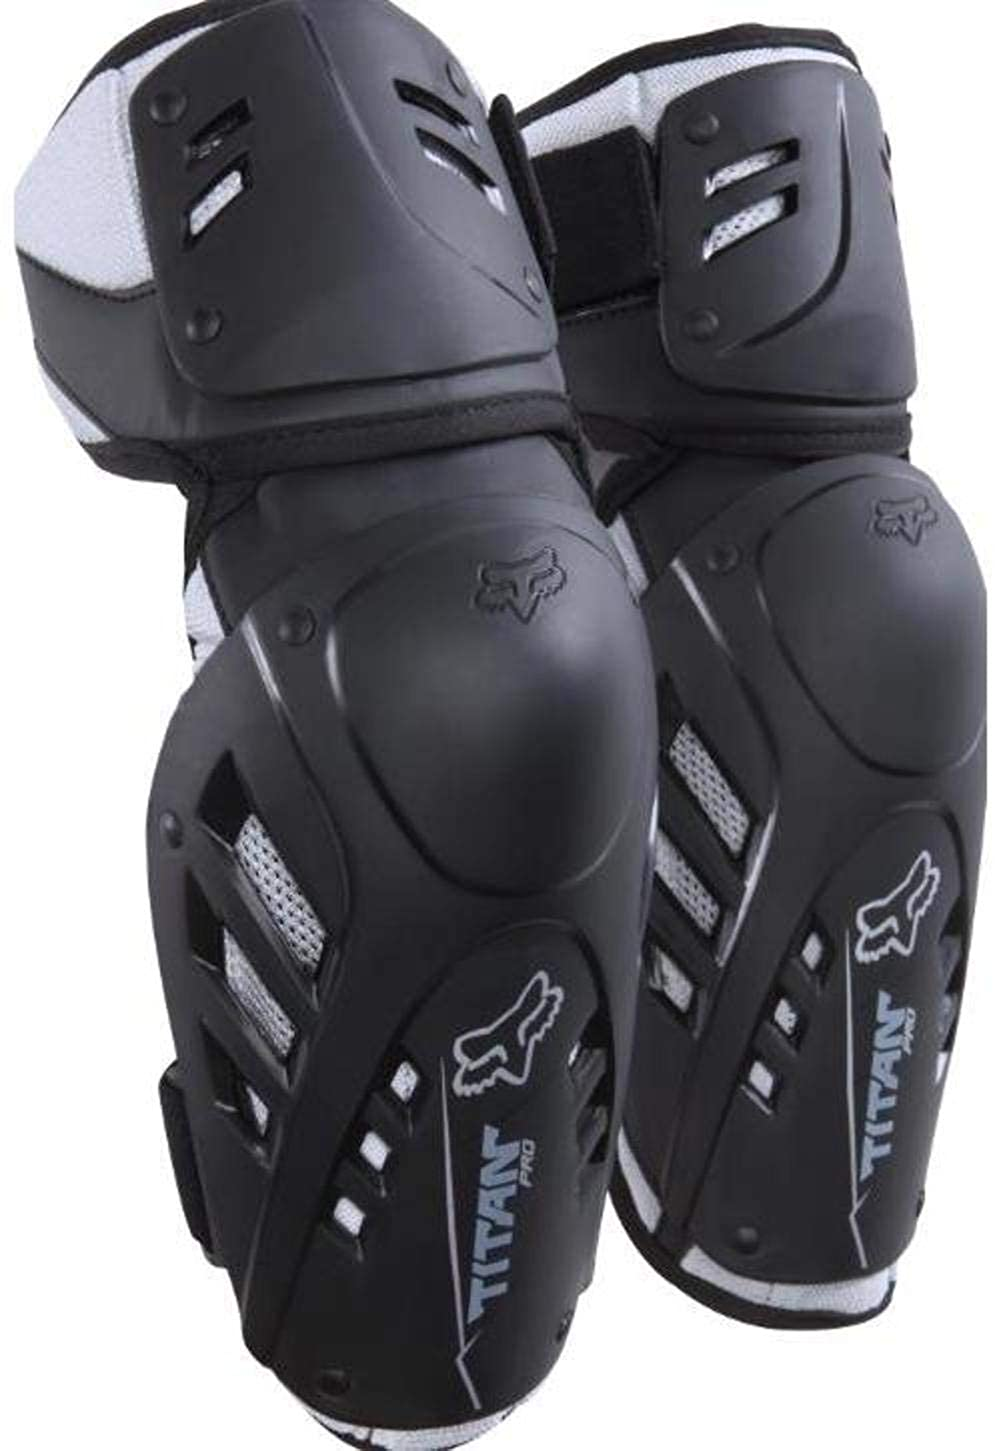 Fox Racing Titan Pro Adult Elbow Guard MotoX Motorcycle Body Armor Large//X-Large Black